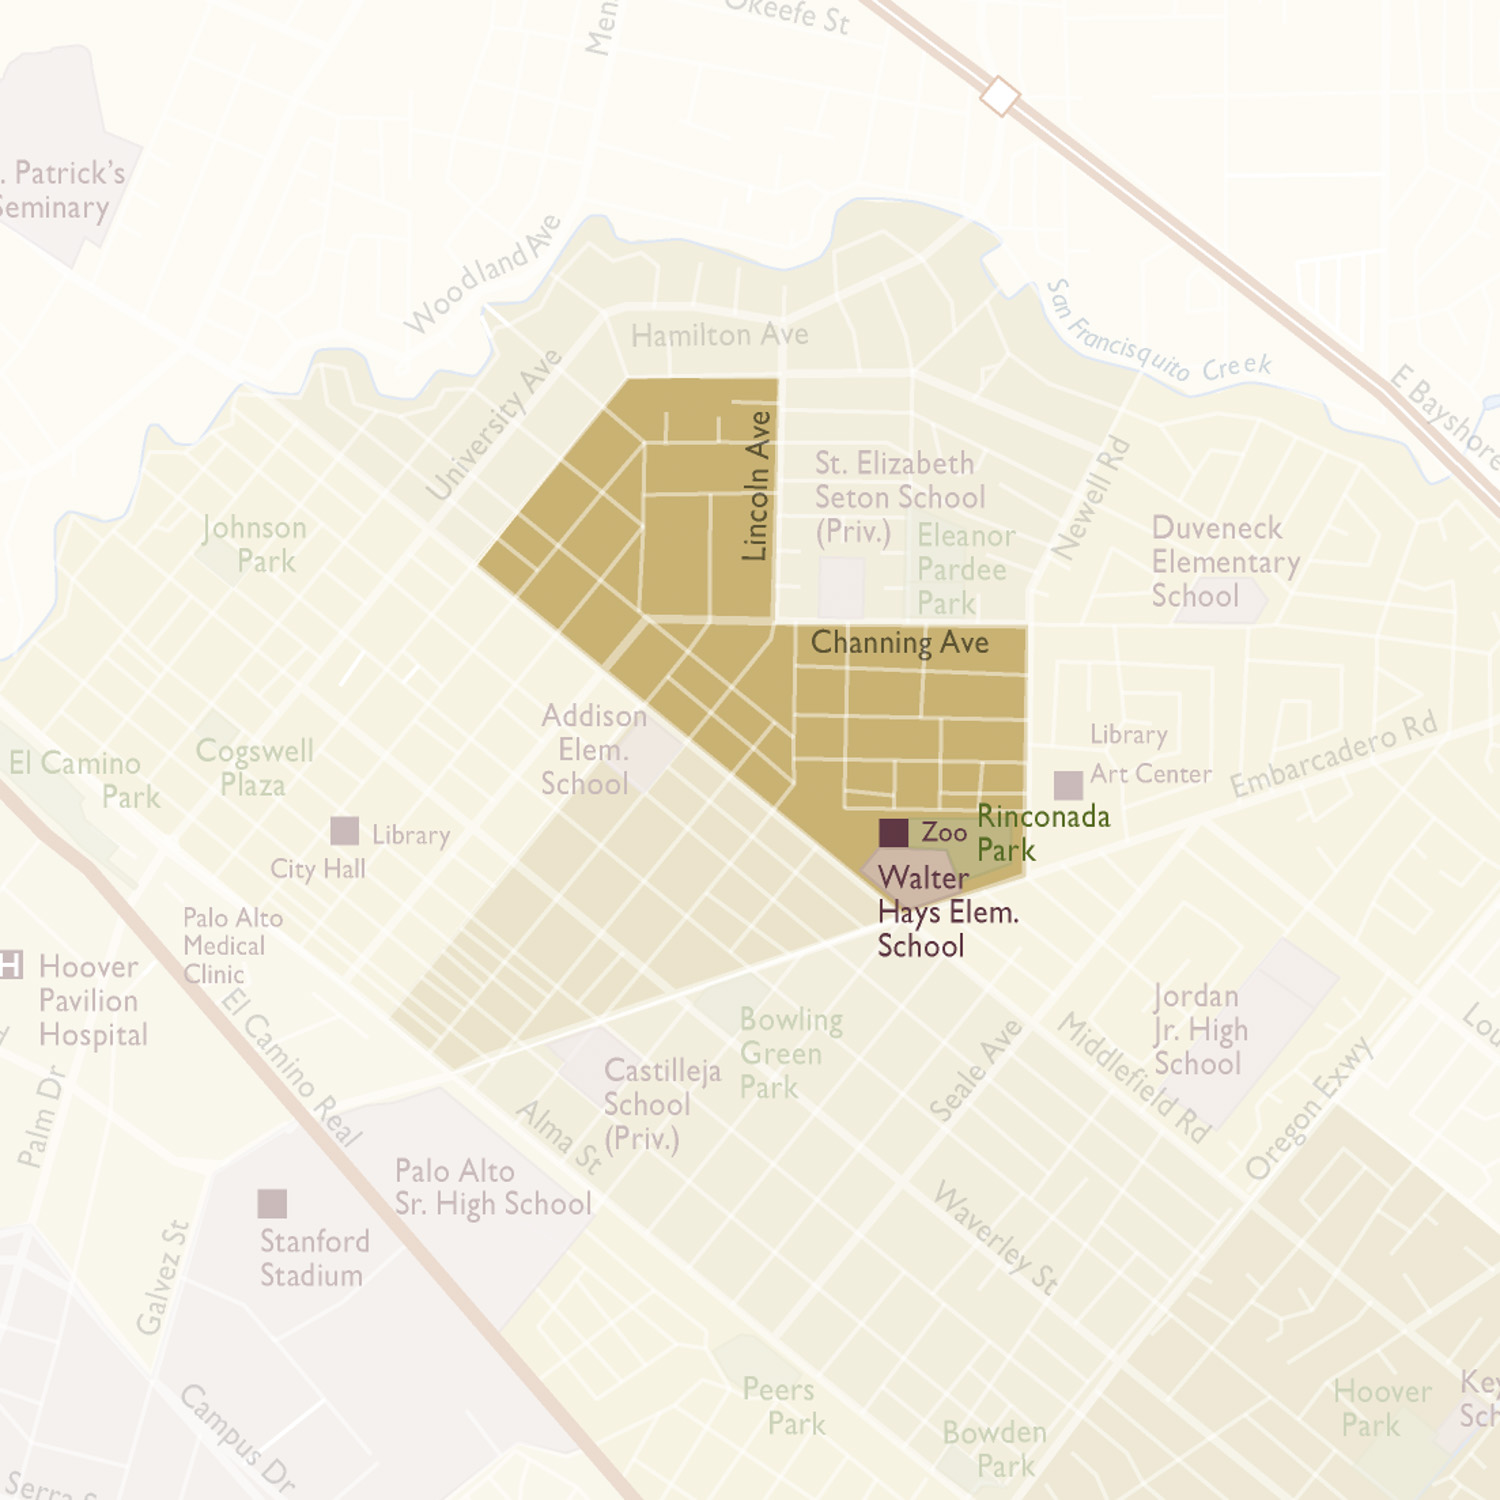 dreyfus-communities-palo-alto-maps-3.jpg